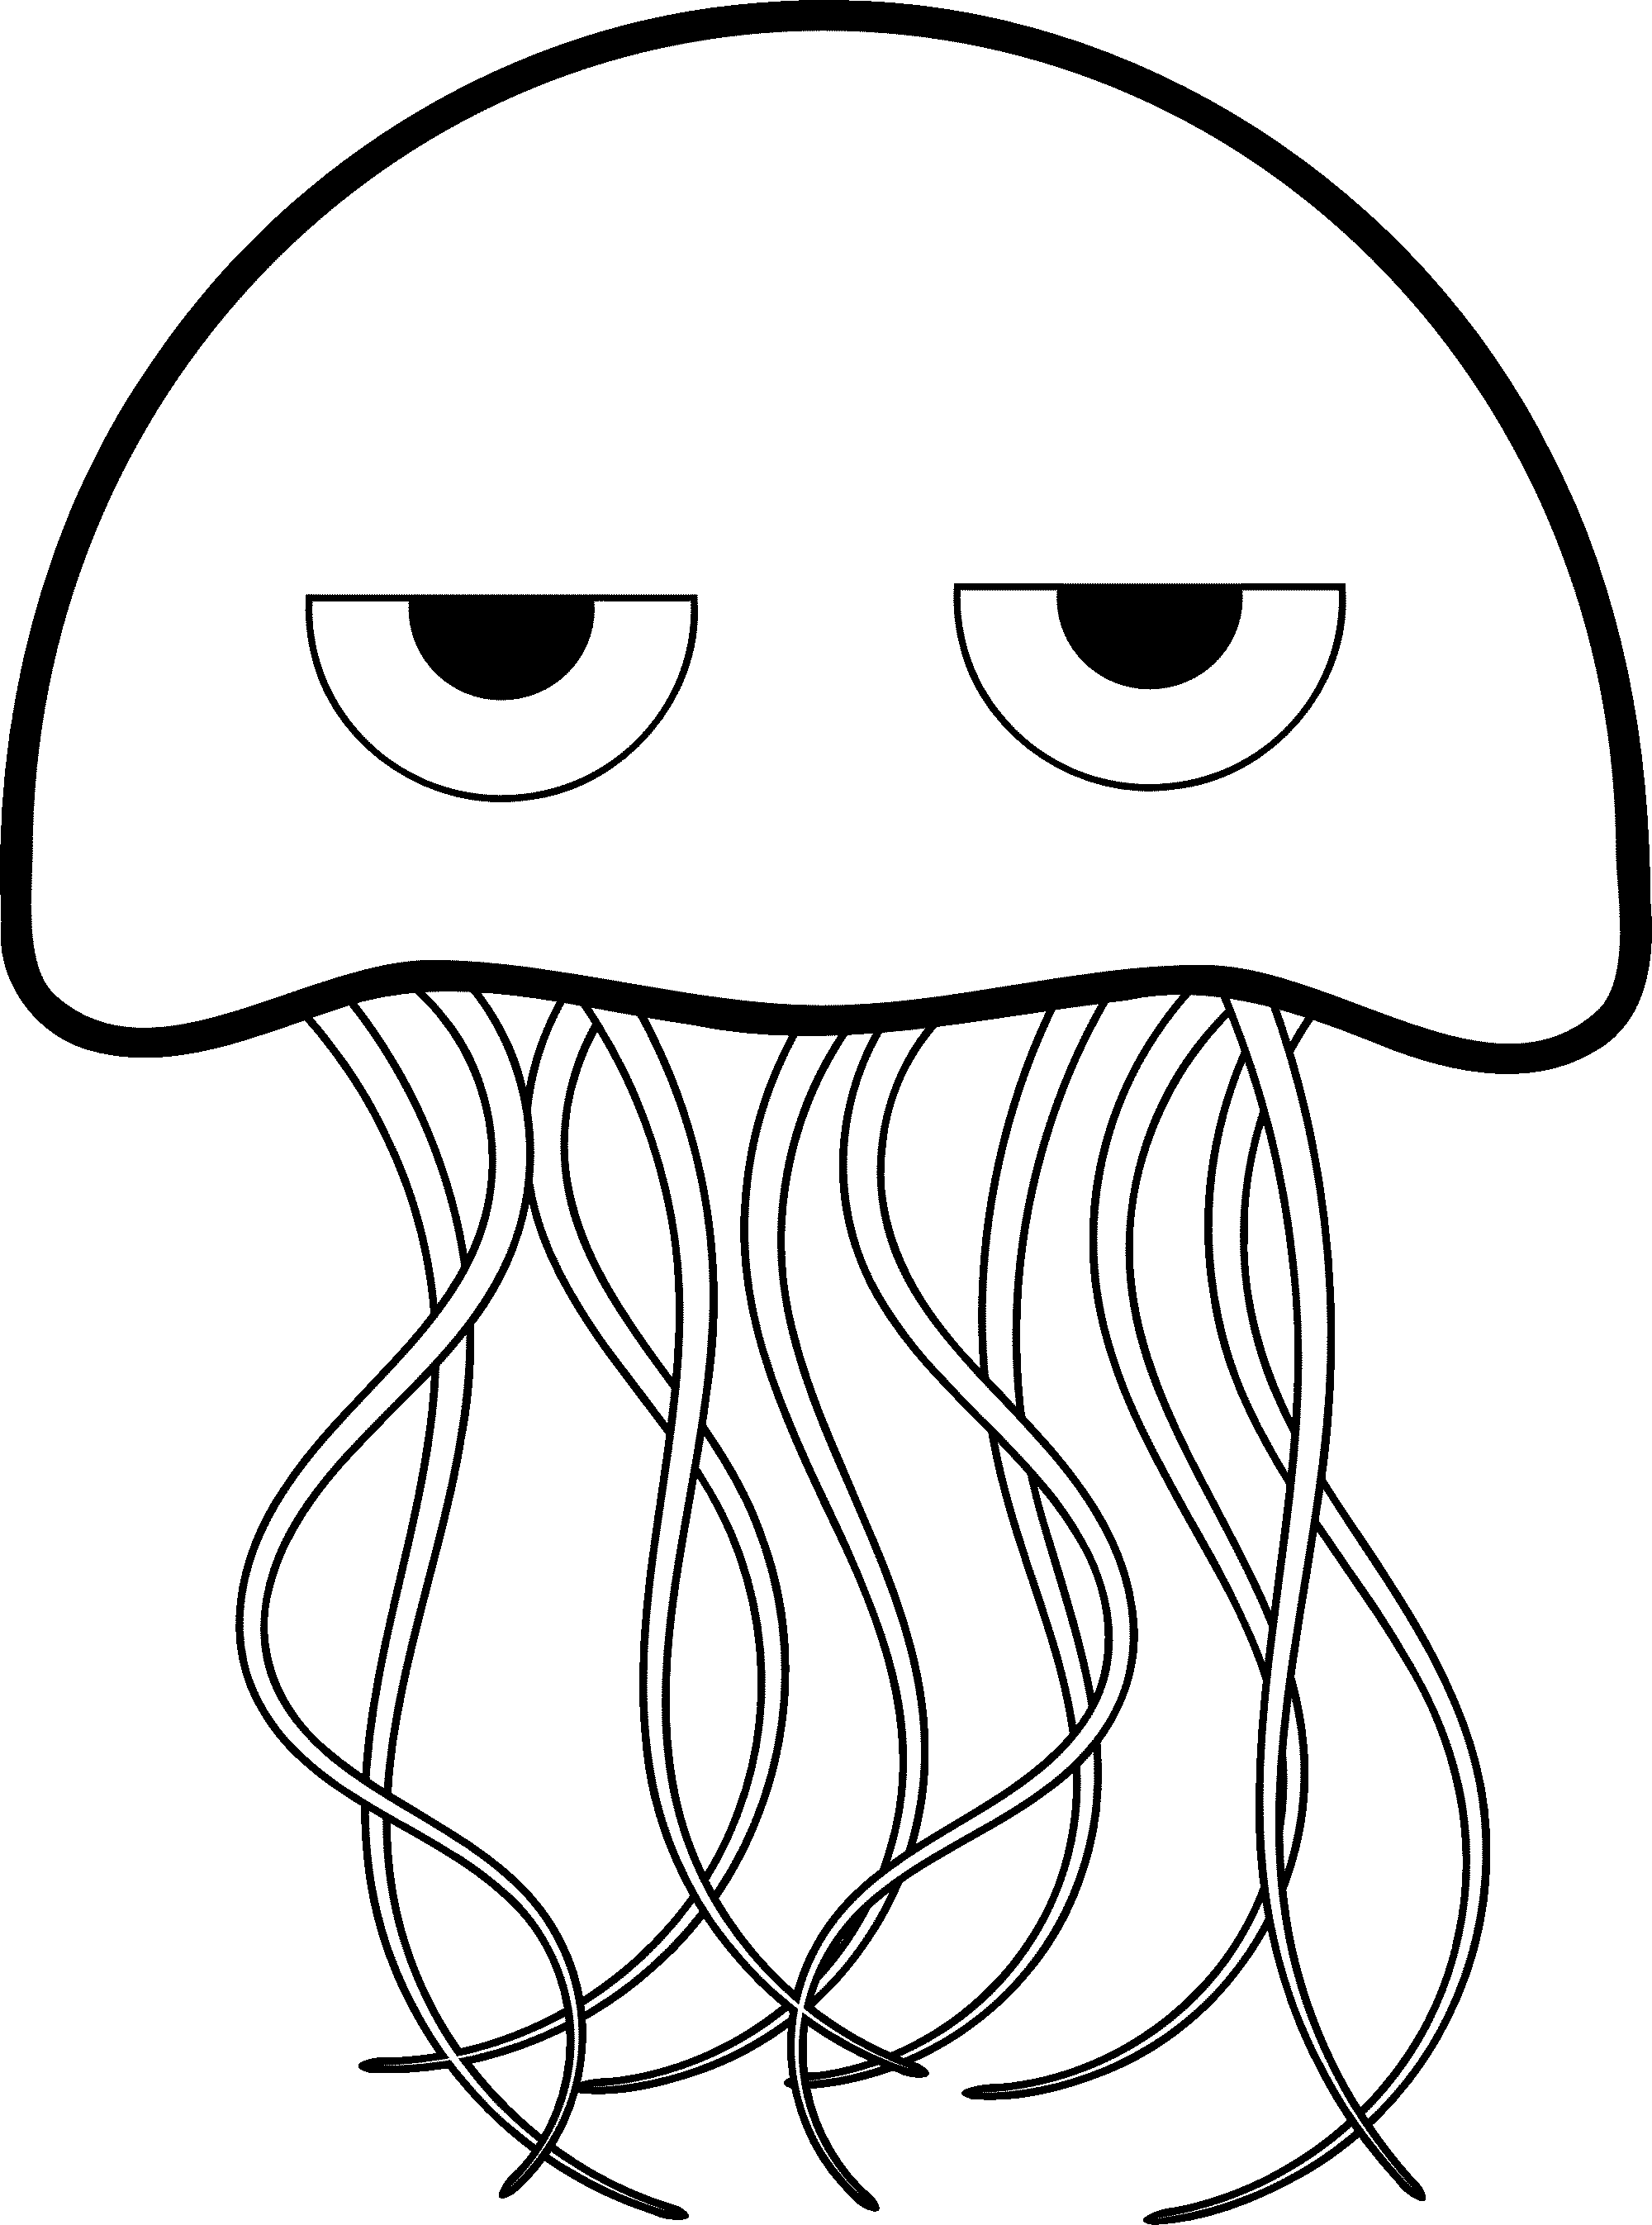 jellyfish for coloring jellyfish coloring page for children medusa printable image jellyfish coloring for